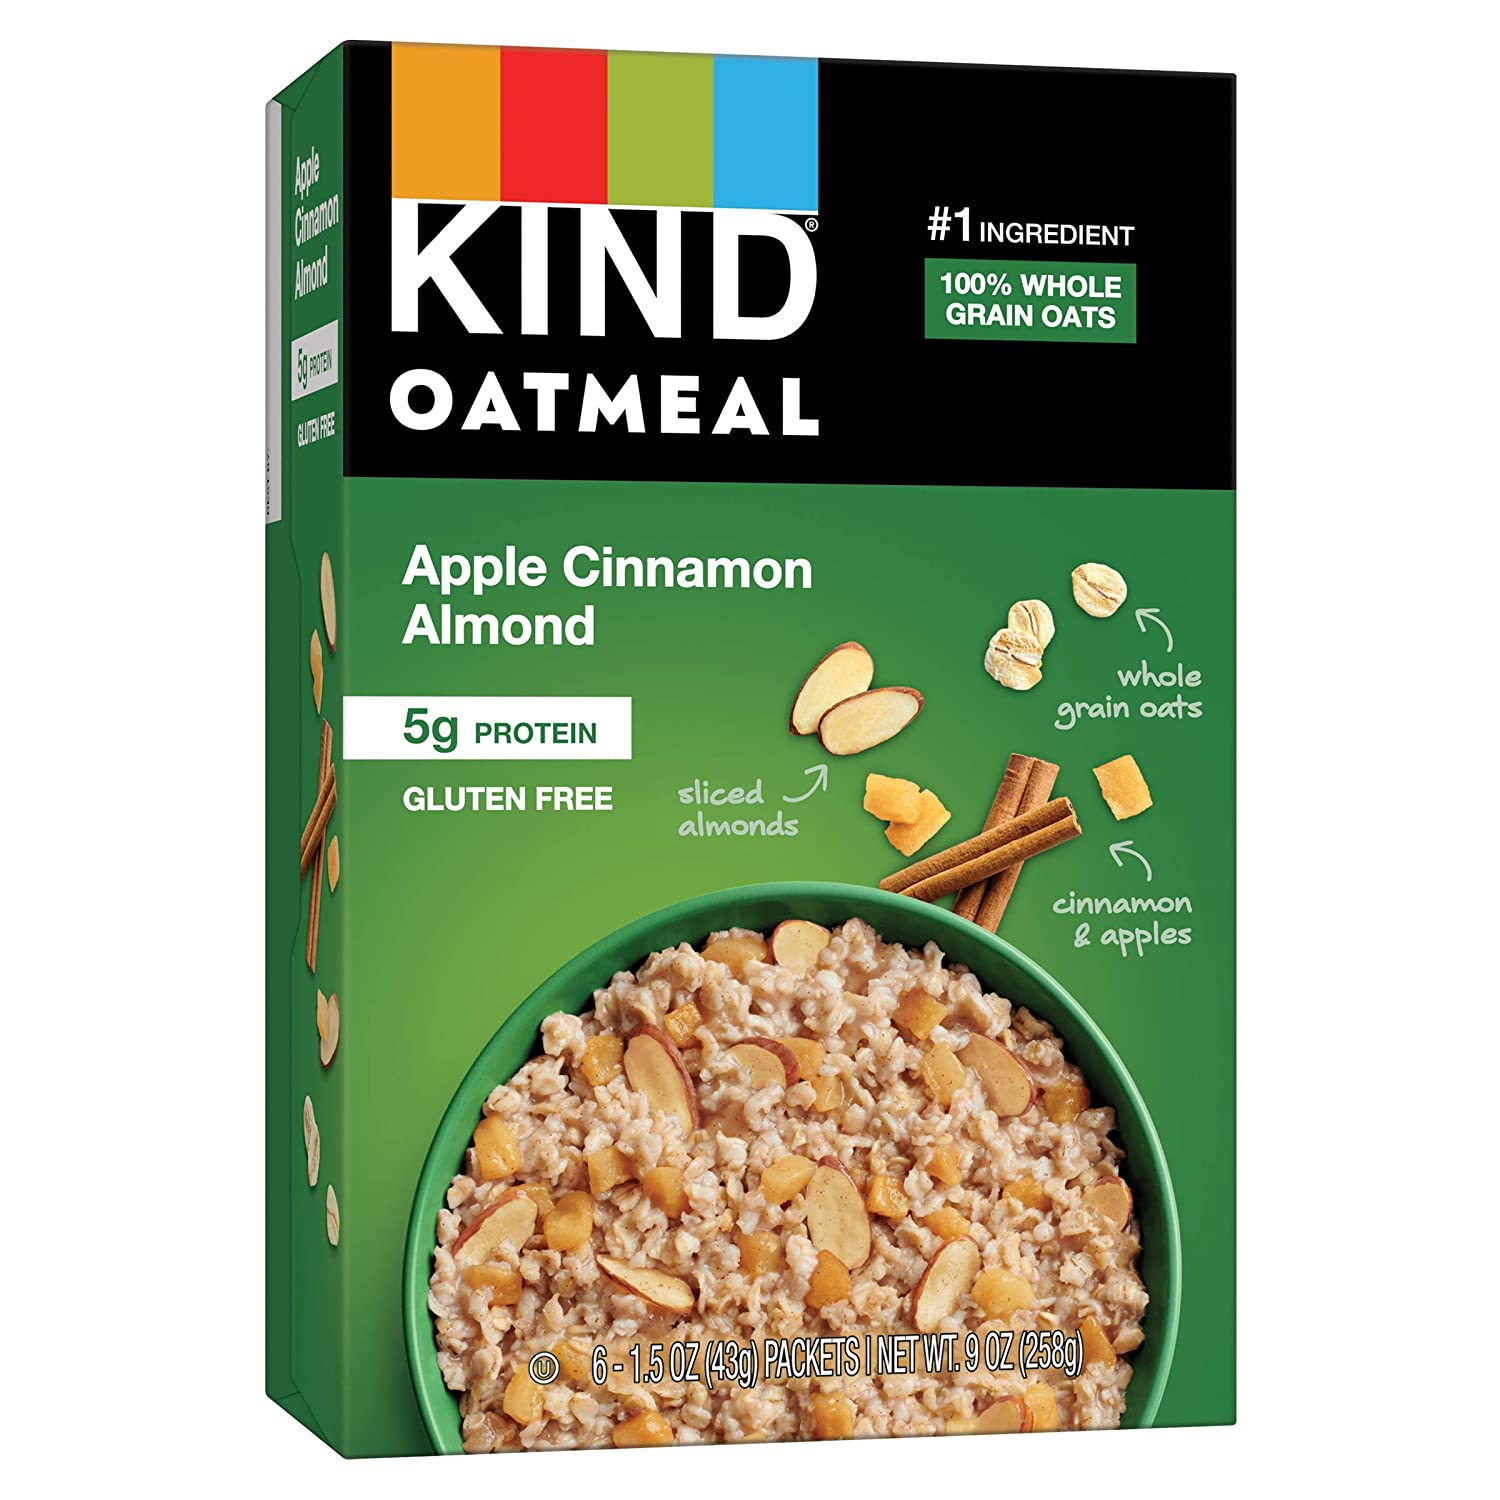 KIND Oatmeal, Apple Cinnamon Almond, Gluten Free, Low Sugar, Individual Packets, 30 Count